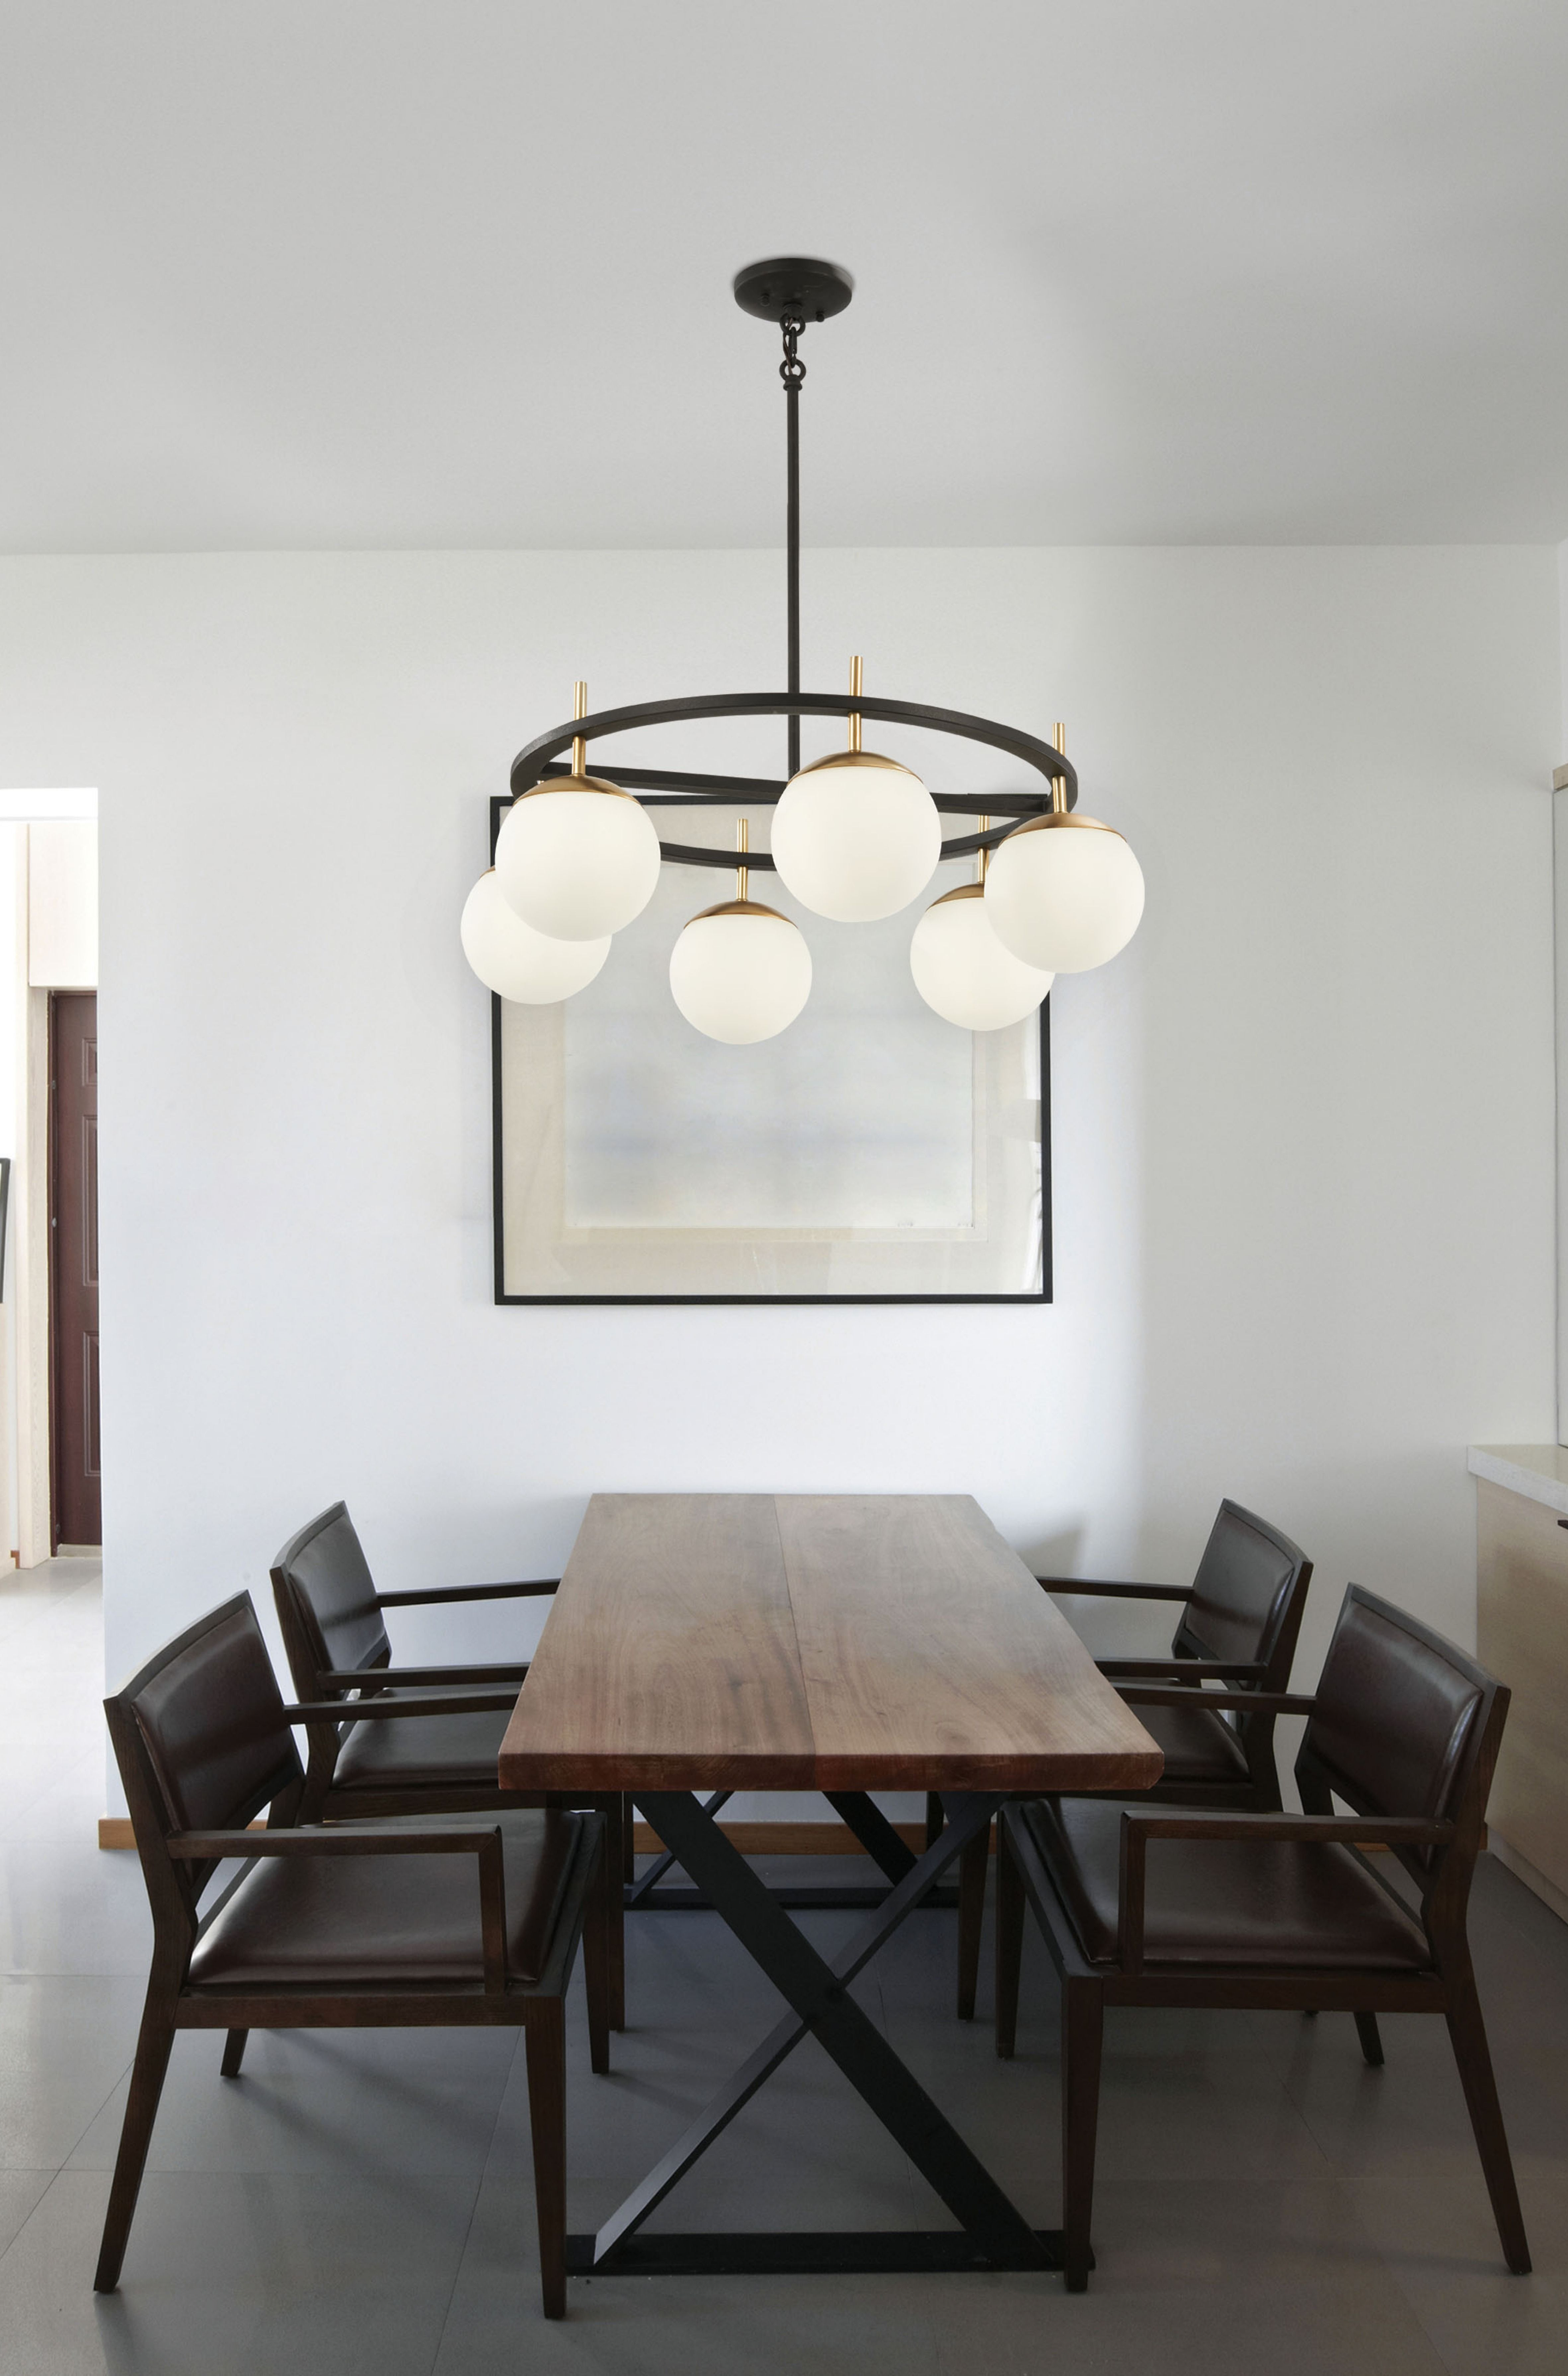 Alluria Pendant By George Kovacs P1356 618 Dining Room Spaces Classic Dining Room Minimalist Dining Room